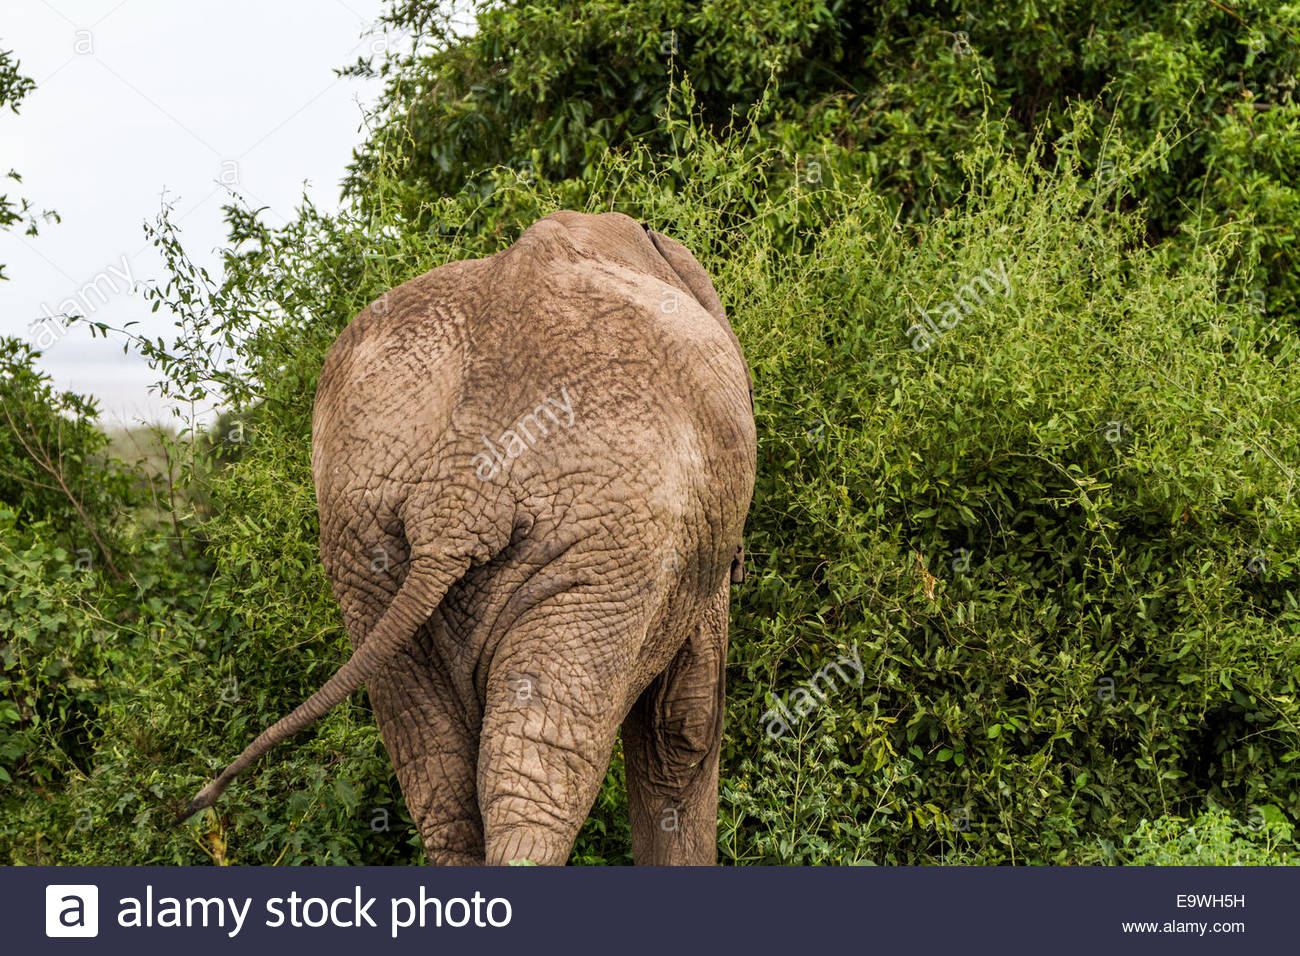 Elephant at Lake Manyara National Park - Tanzania - Stock Image